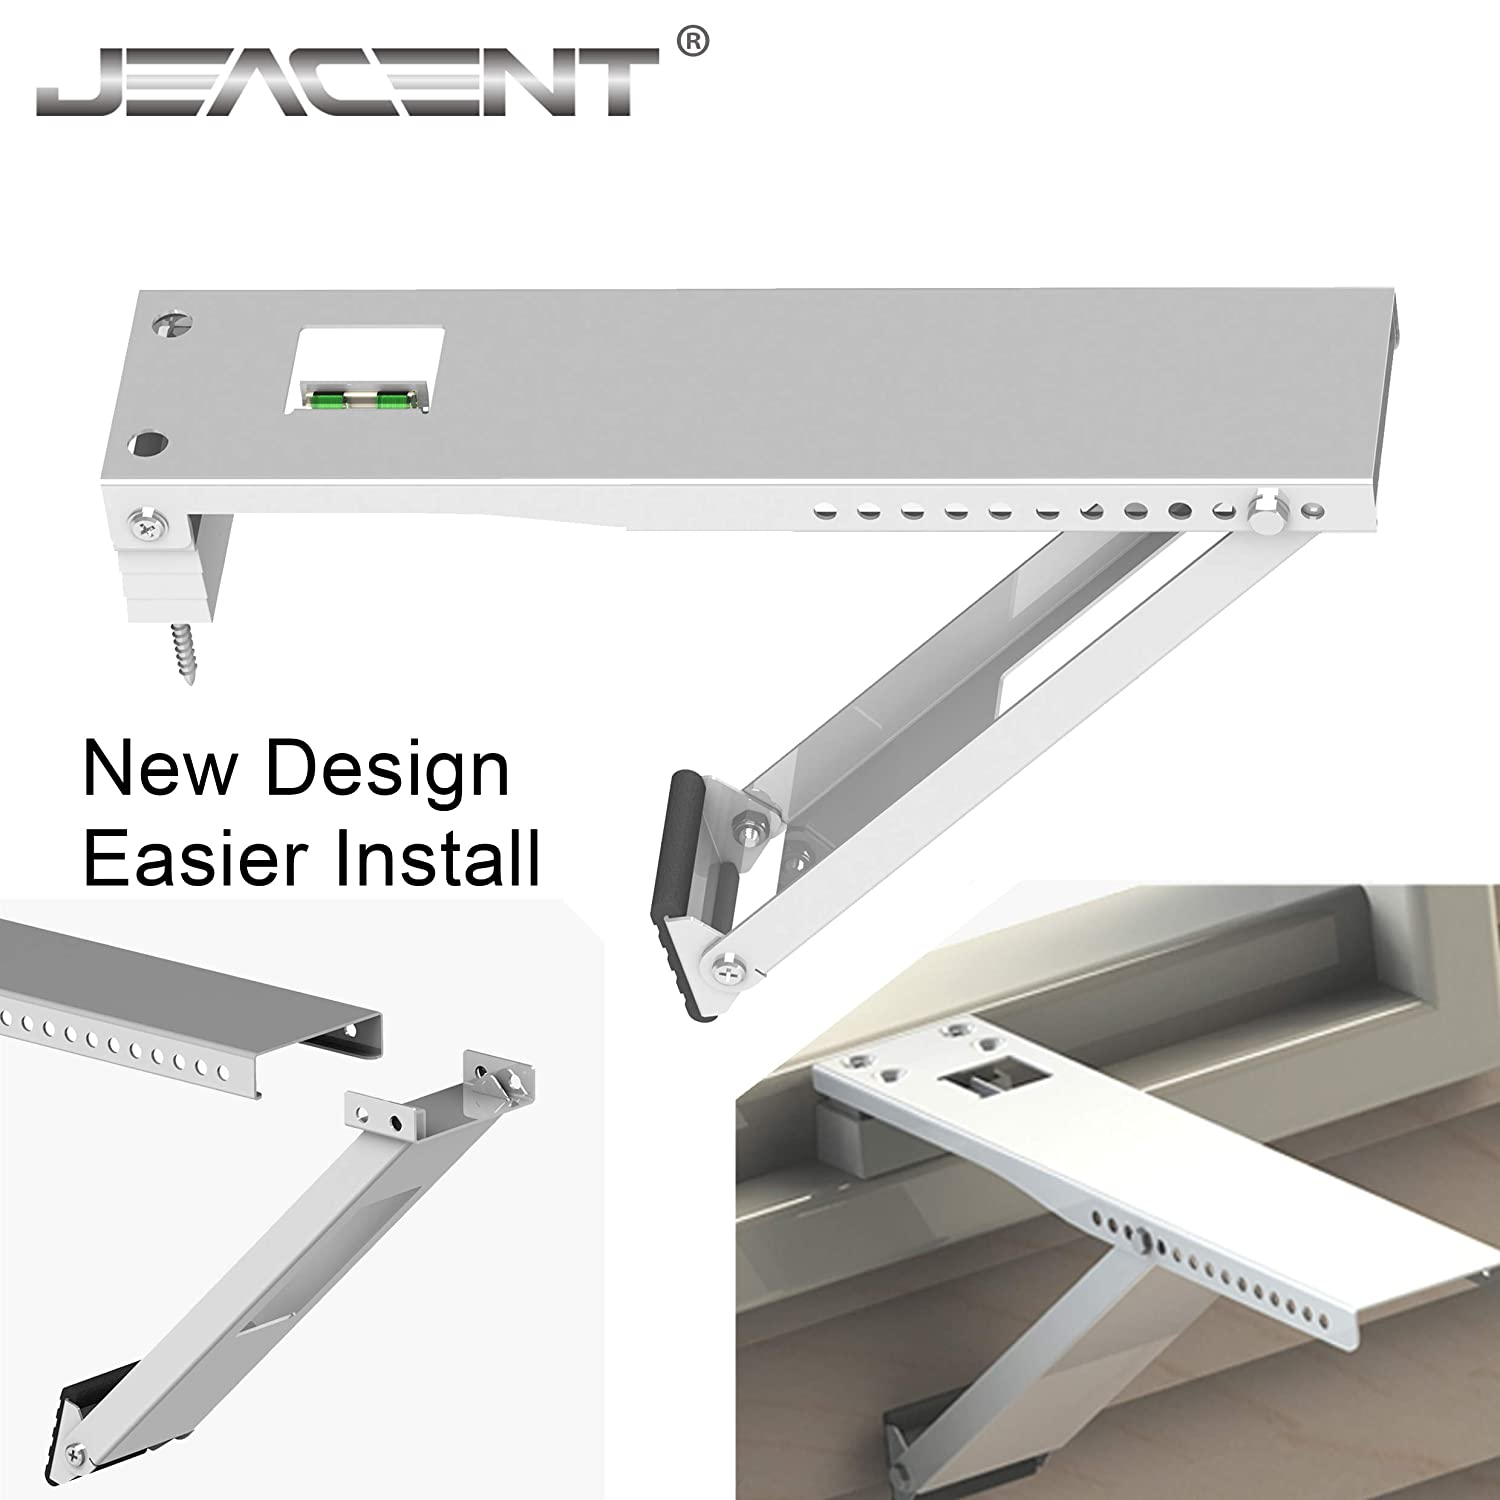 Jeacent Universal AC Window Bracket, Air Conditioner Support Bracket Heavy Duty, Up to 85 lbs - 13.5 inches Arm for Small A/C Units Jeacent Innovations